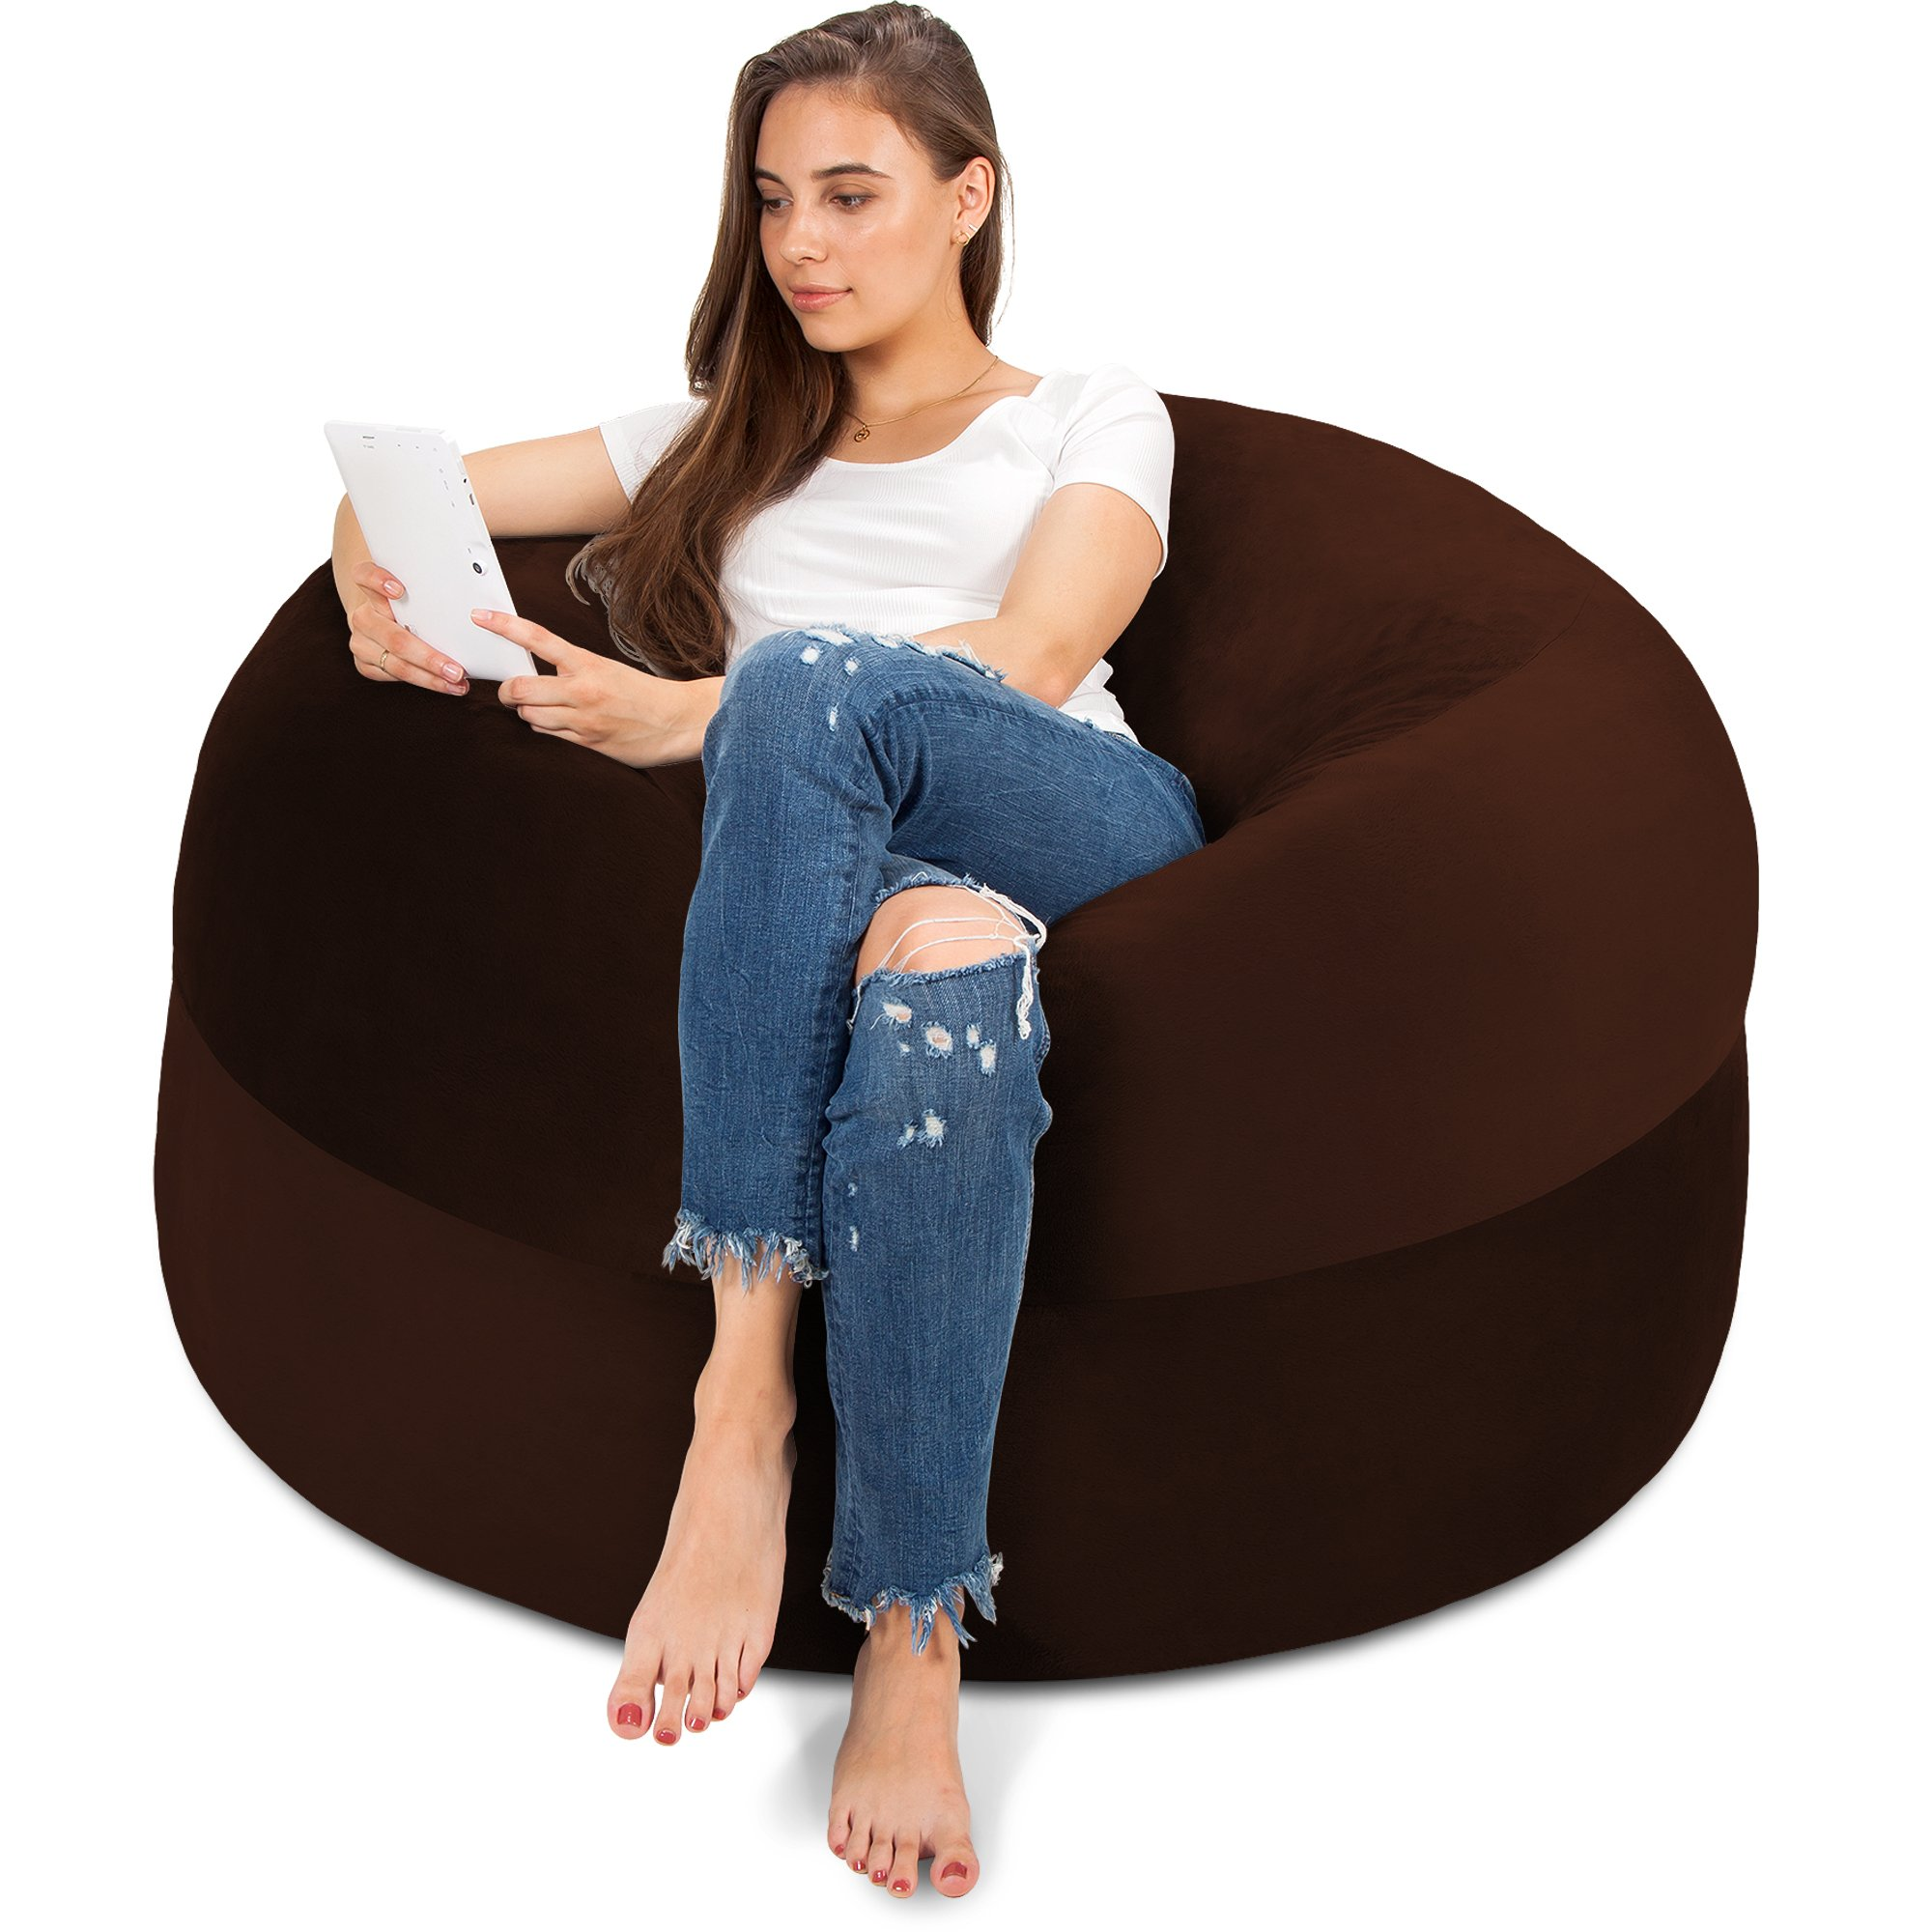 4FT Bean Bag Chair